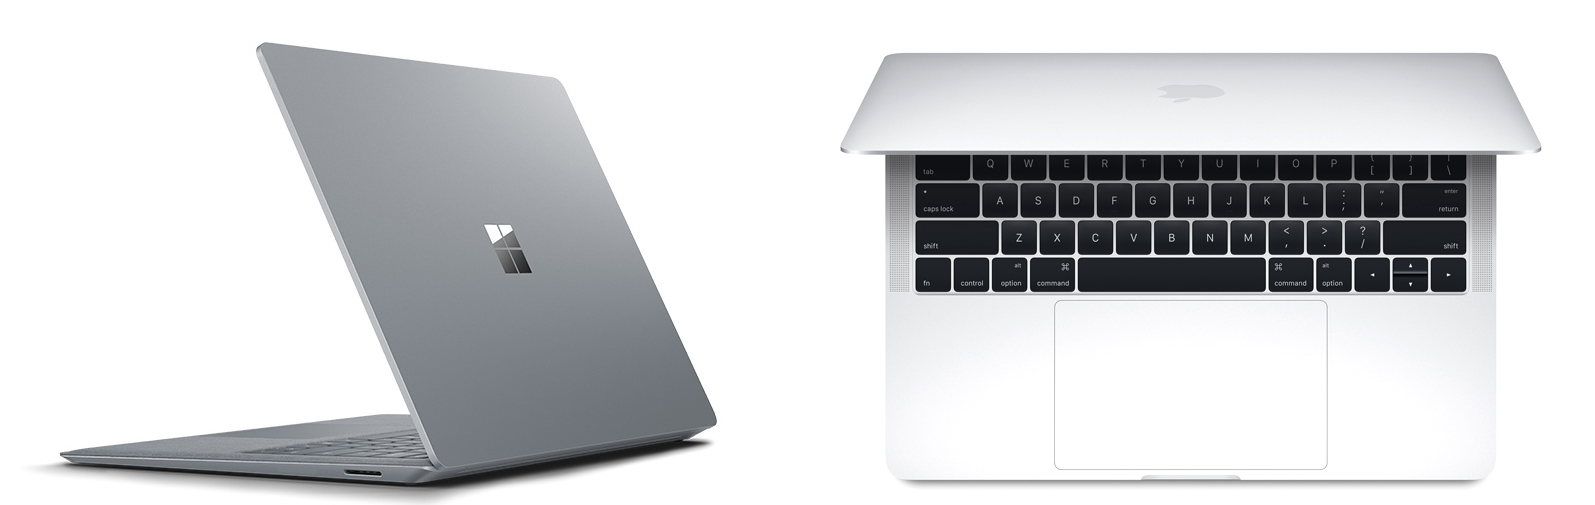 Surface Lap, MacBook Pro side by side